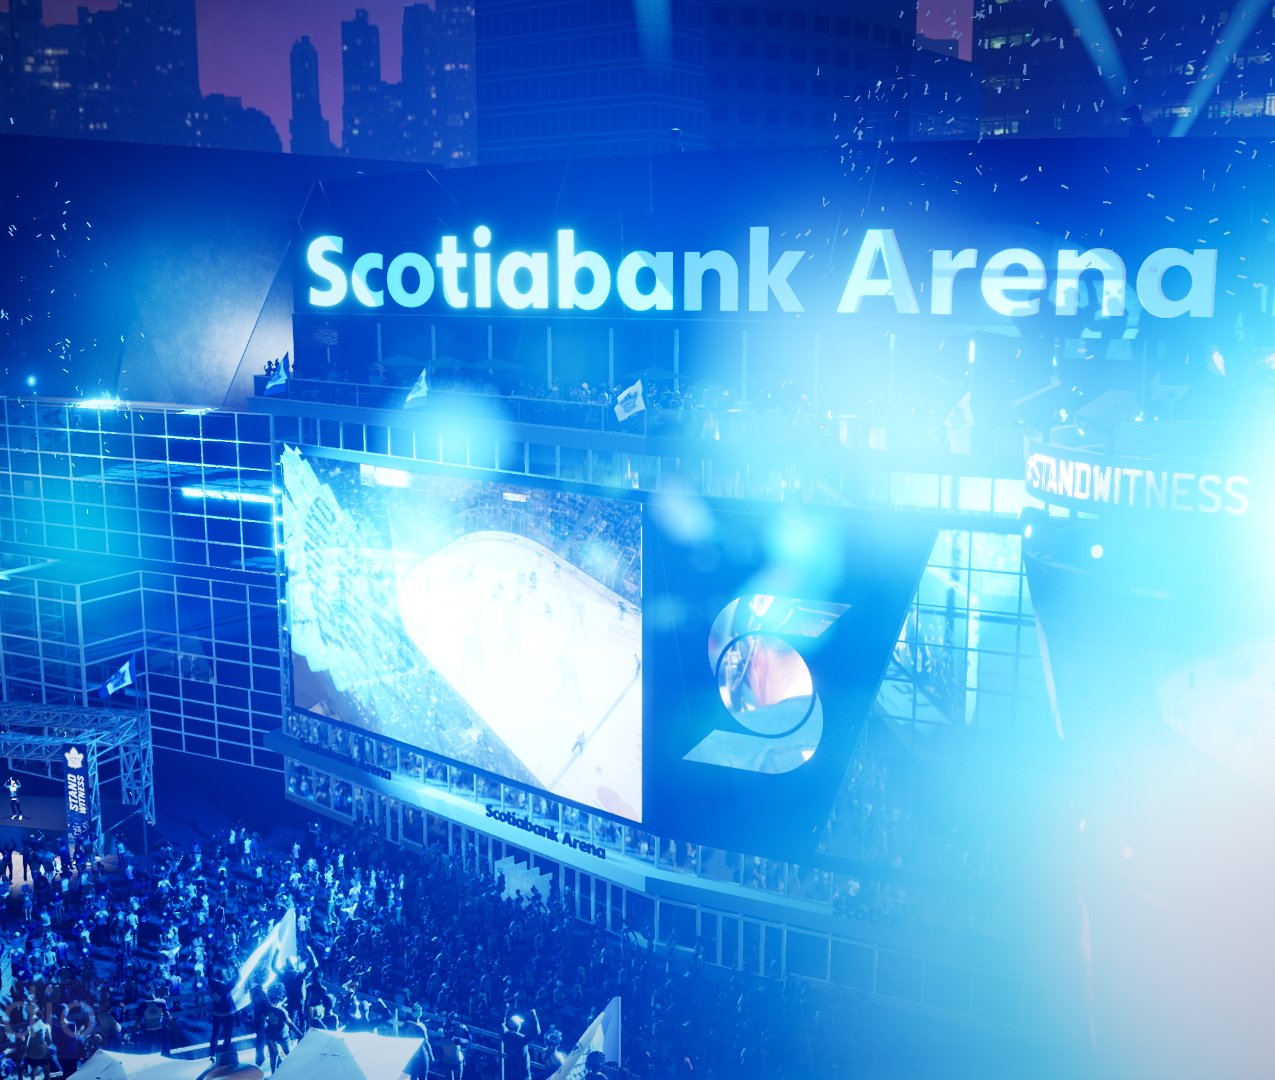 3D render of hockey and basketball arena during game night